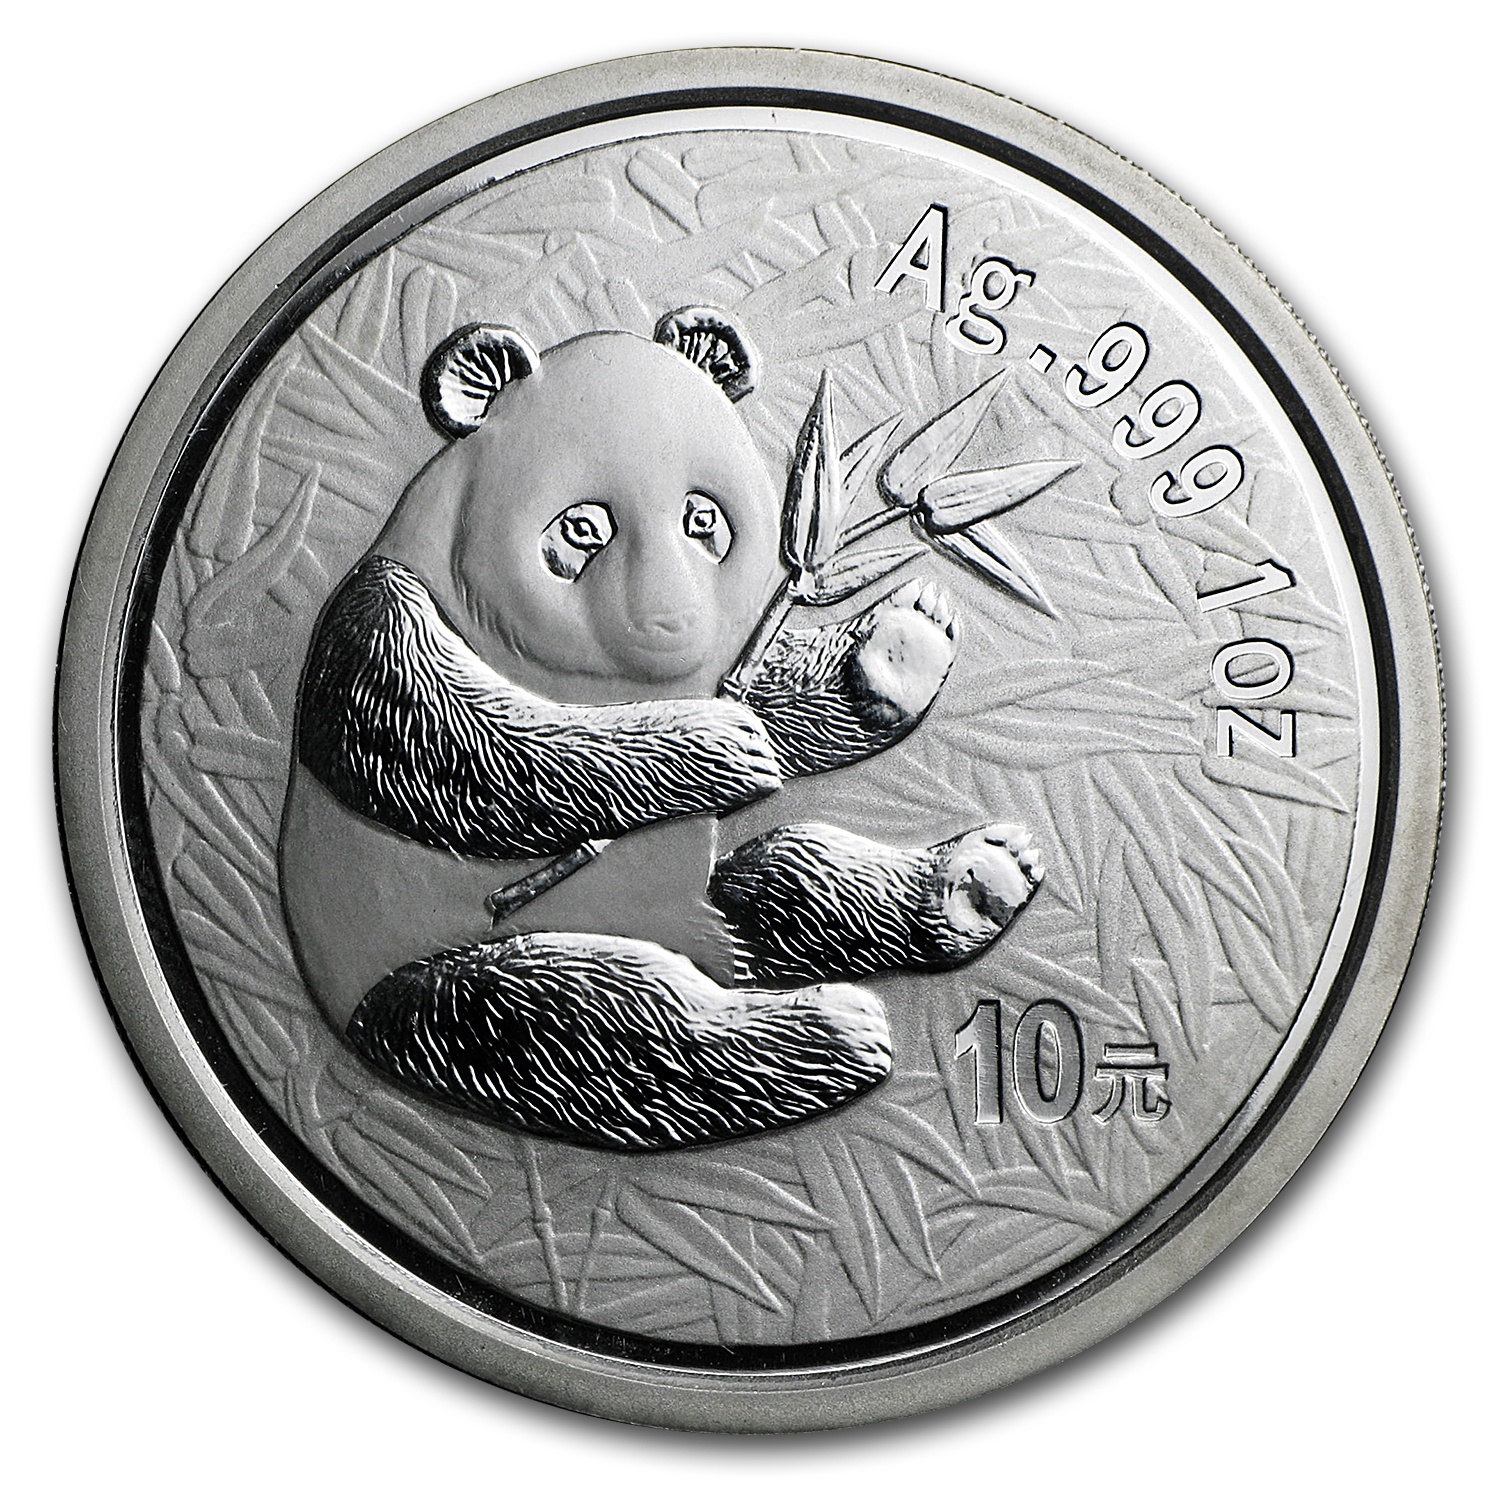 2000 China 1 oz Silver Panda Frosted BU (Not in Plastic)